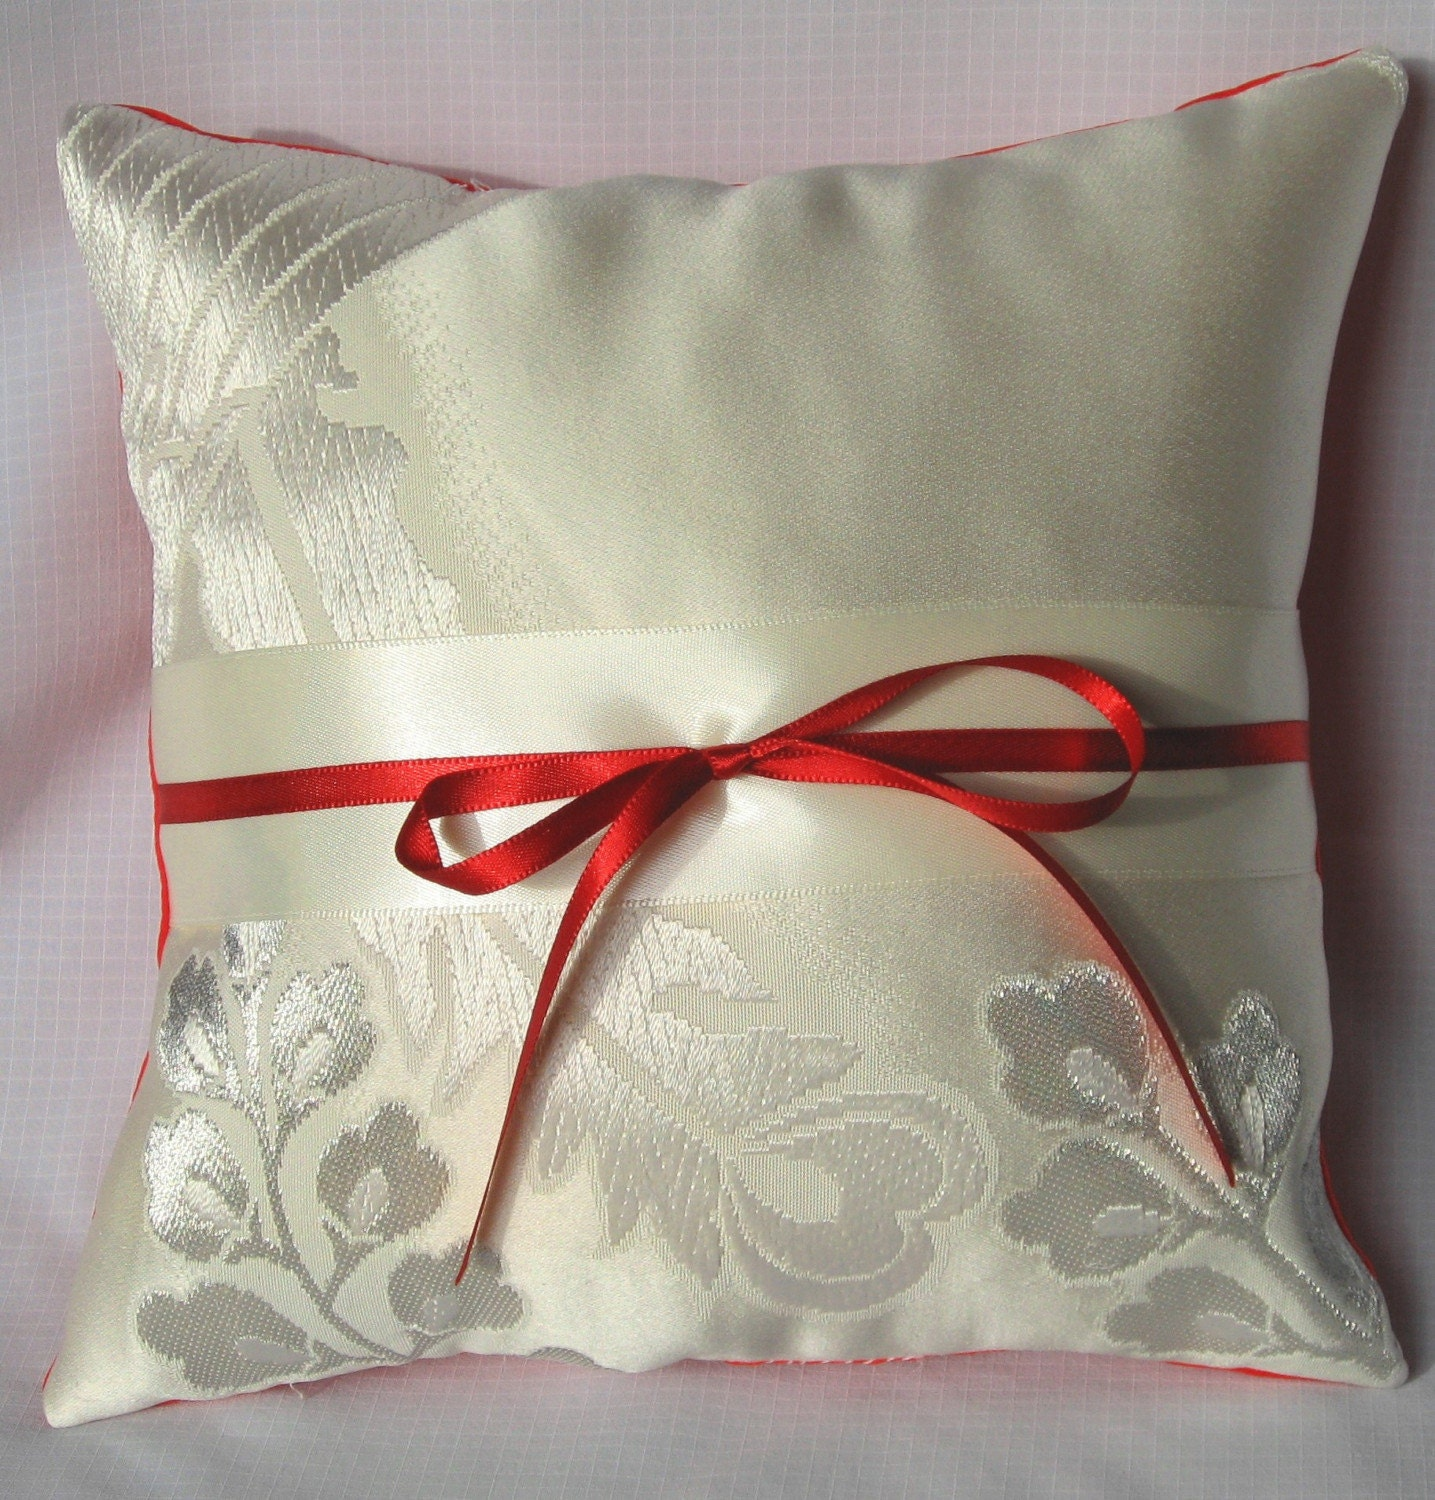 Wedding Ring Silk Japanese Kimono Pillow Private by icanfancythat